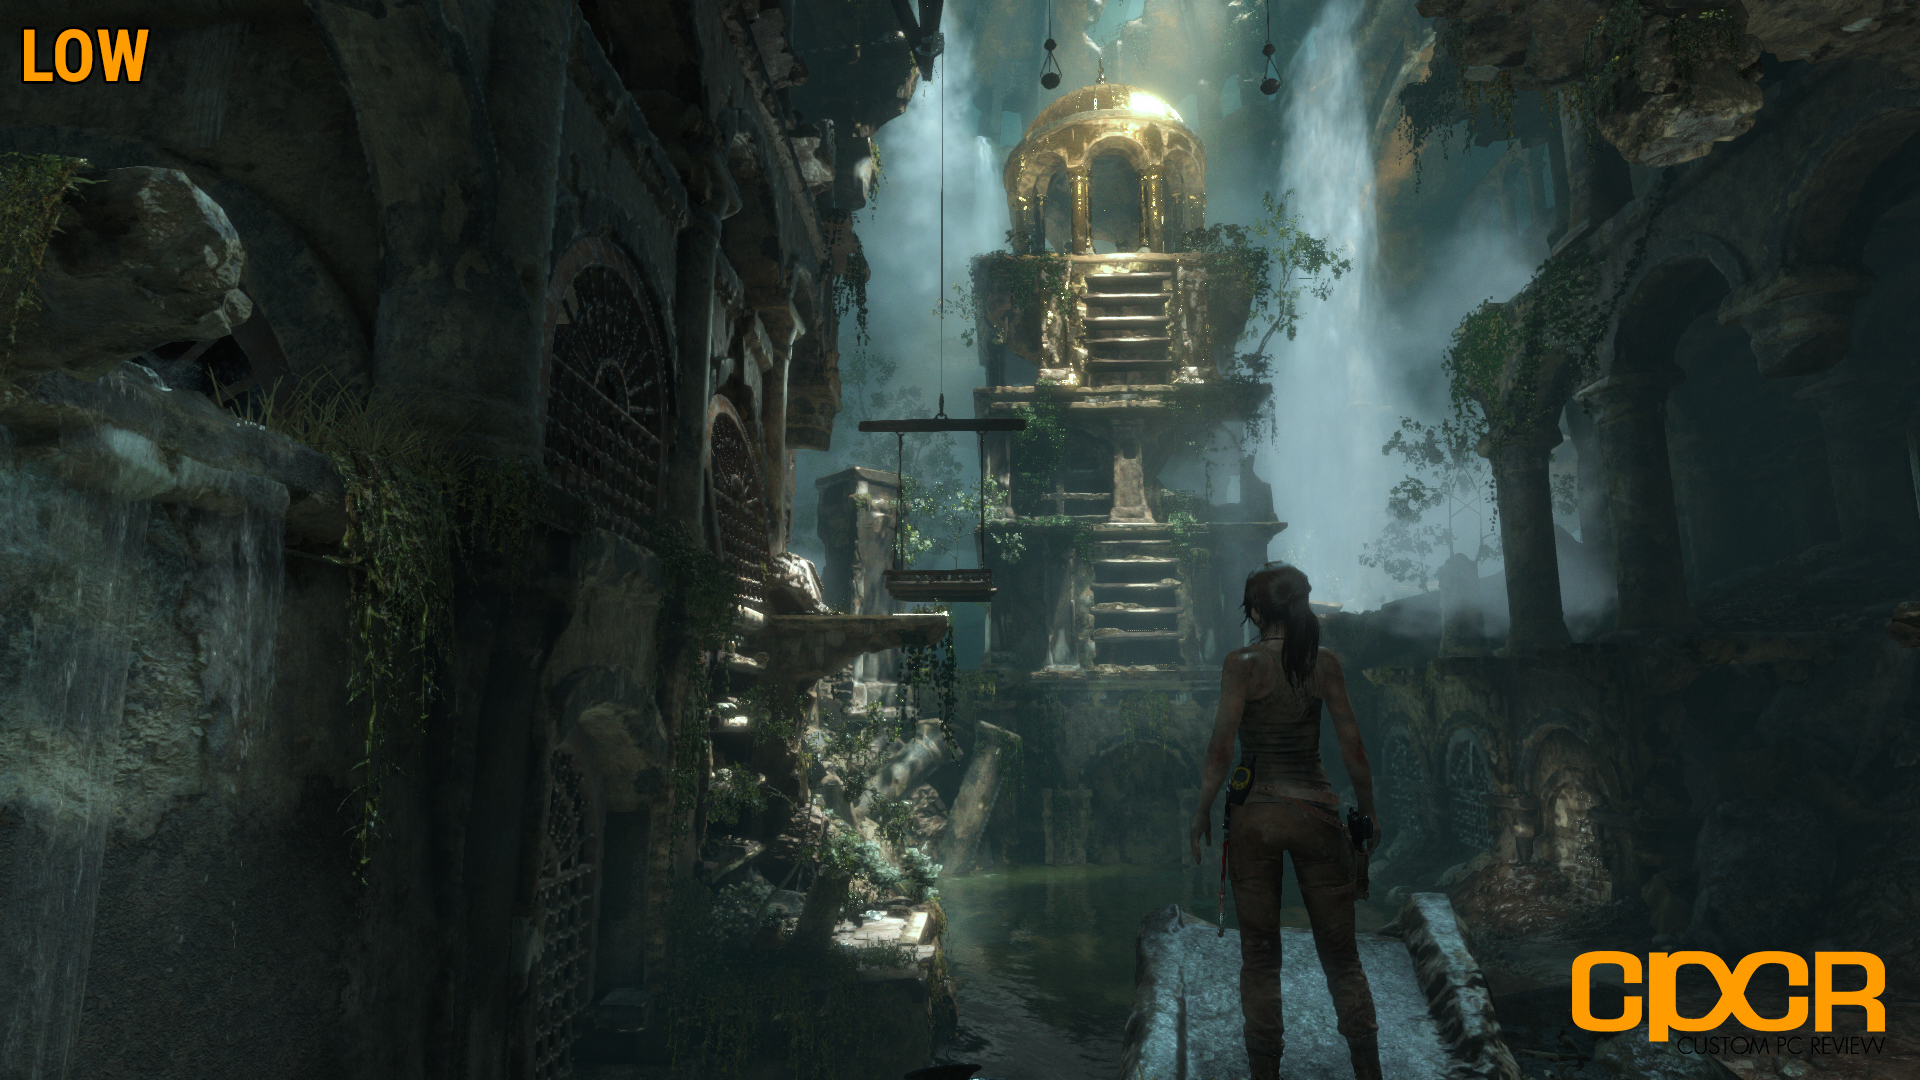 Rise of The Tomb Raider PC Performance and Graphics Analysis